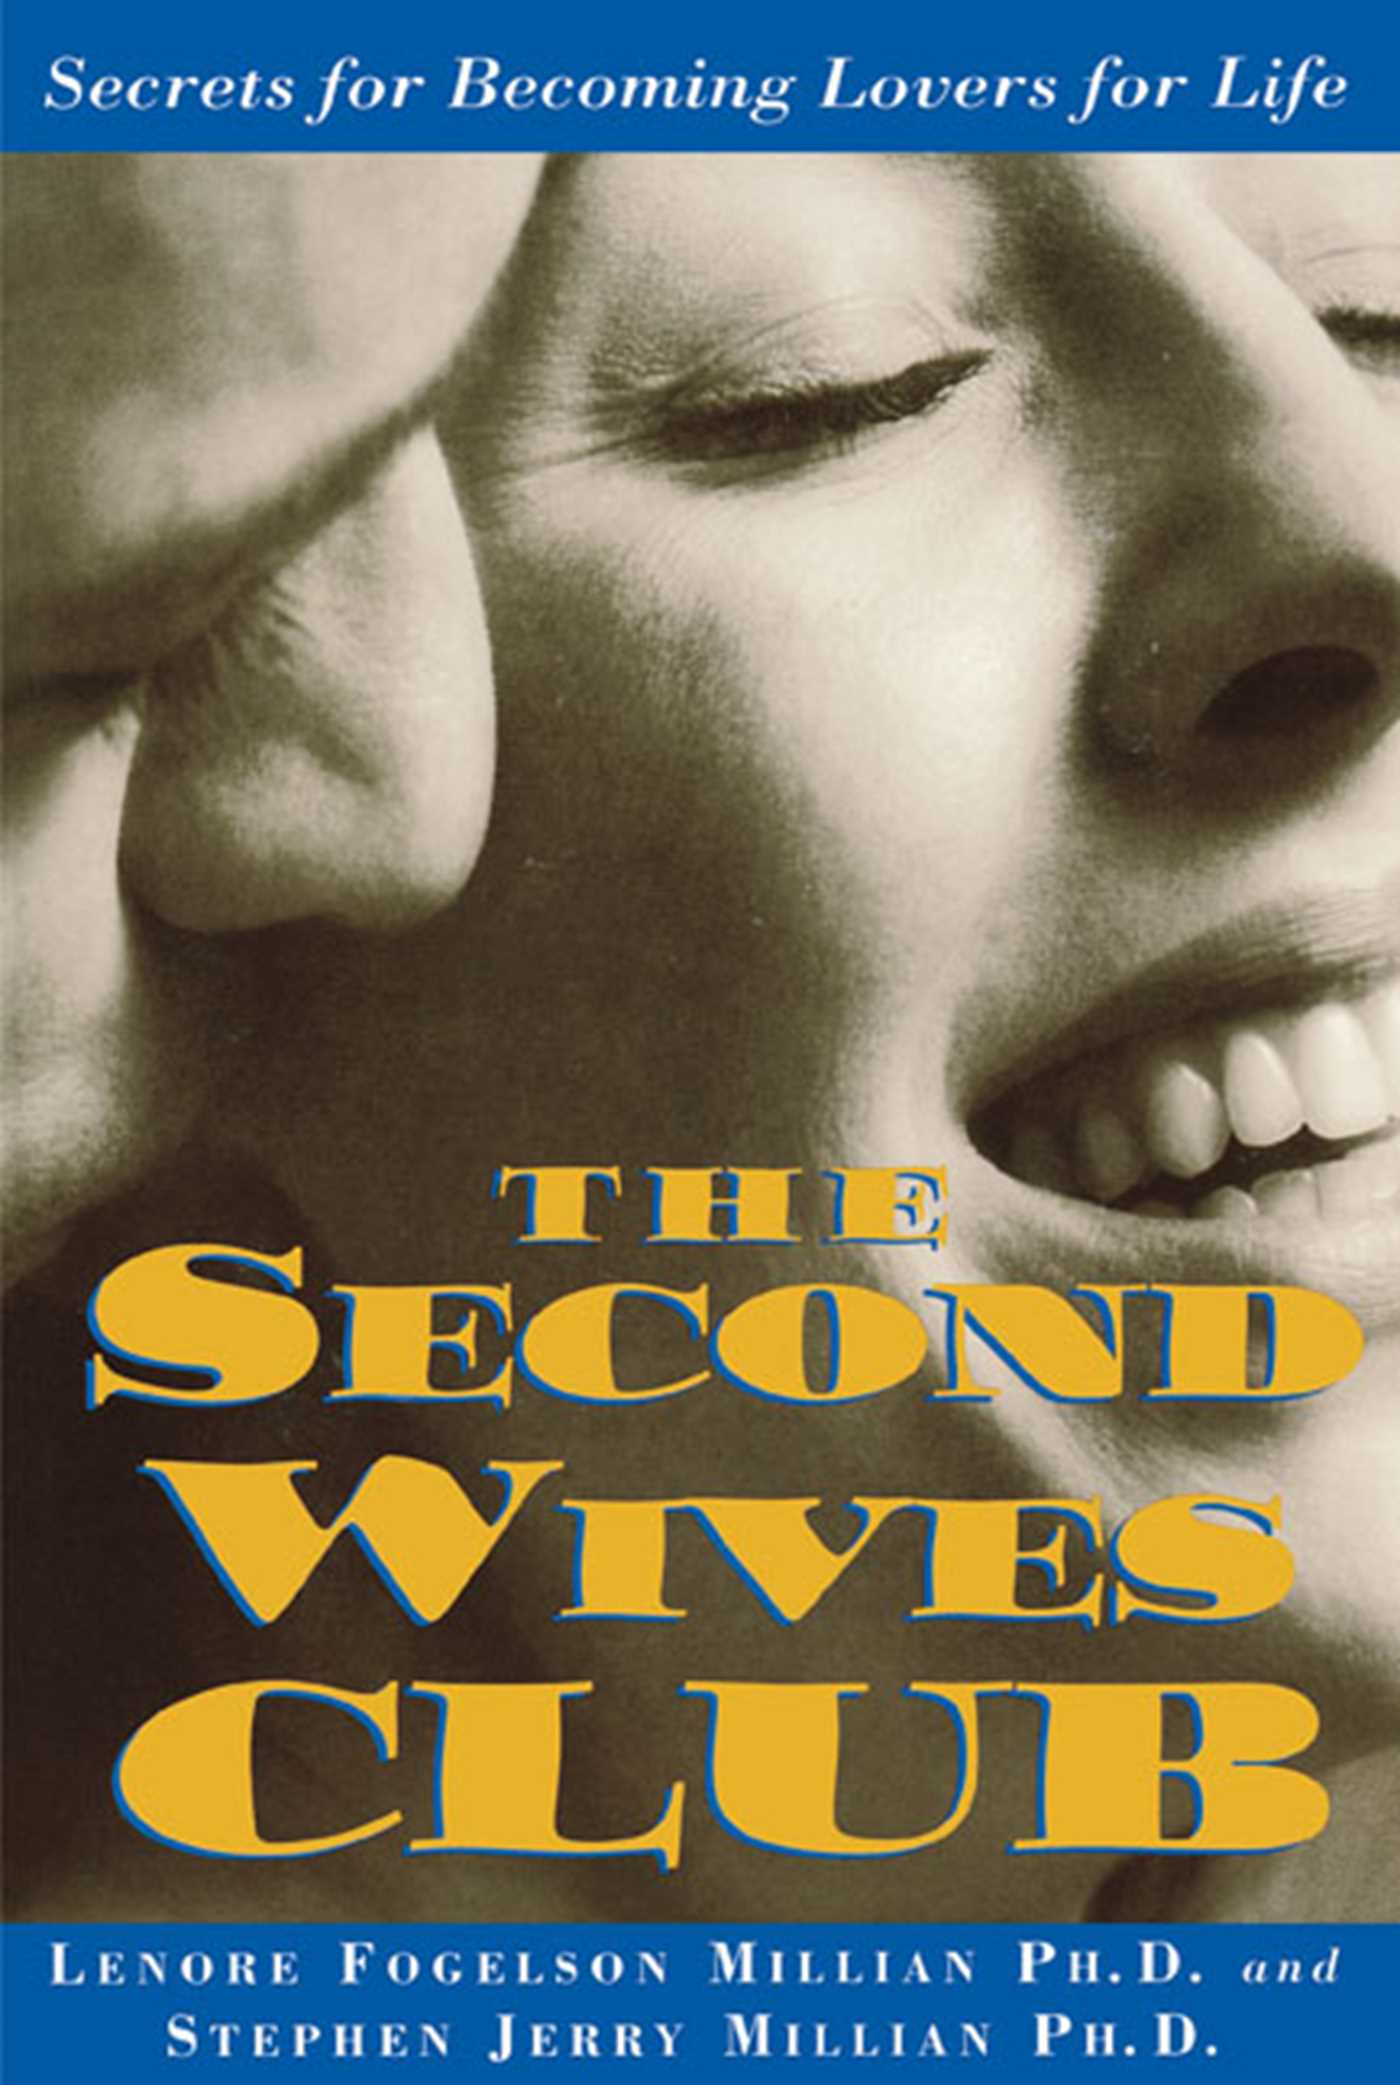 The second wives club 9781451676518 hr